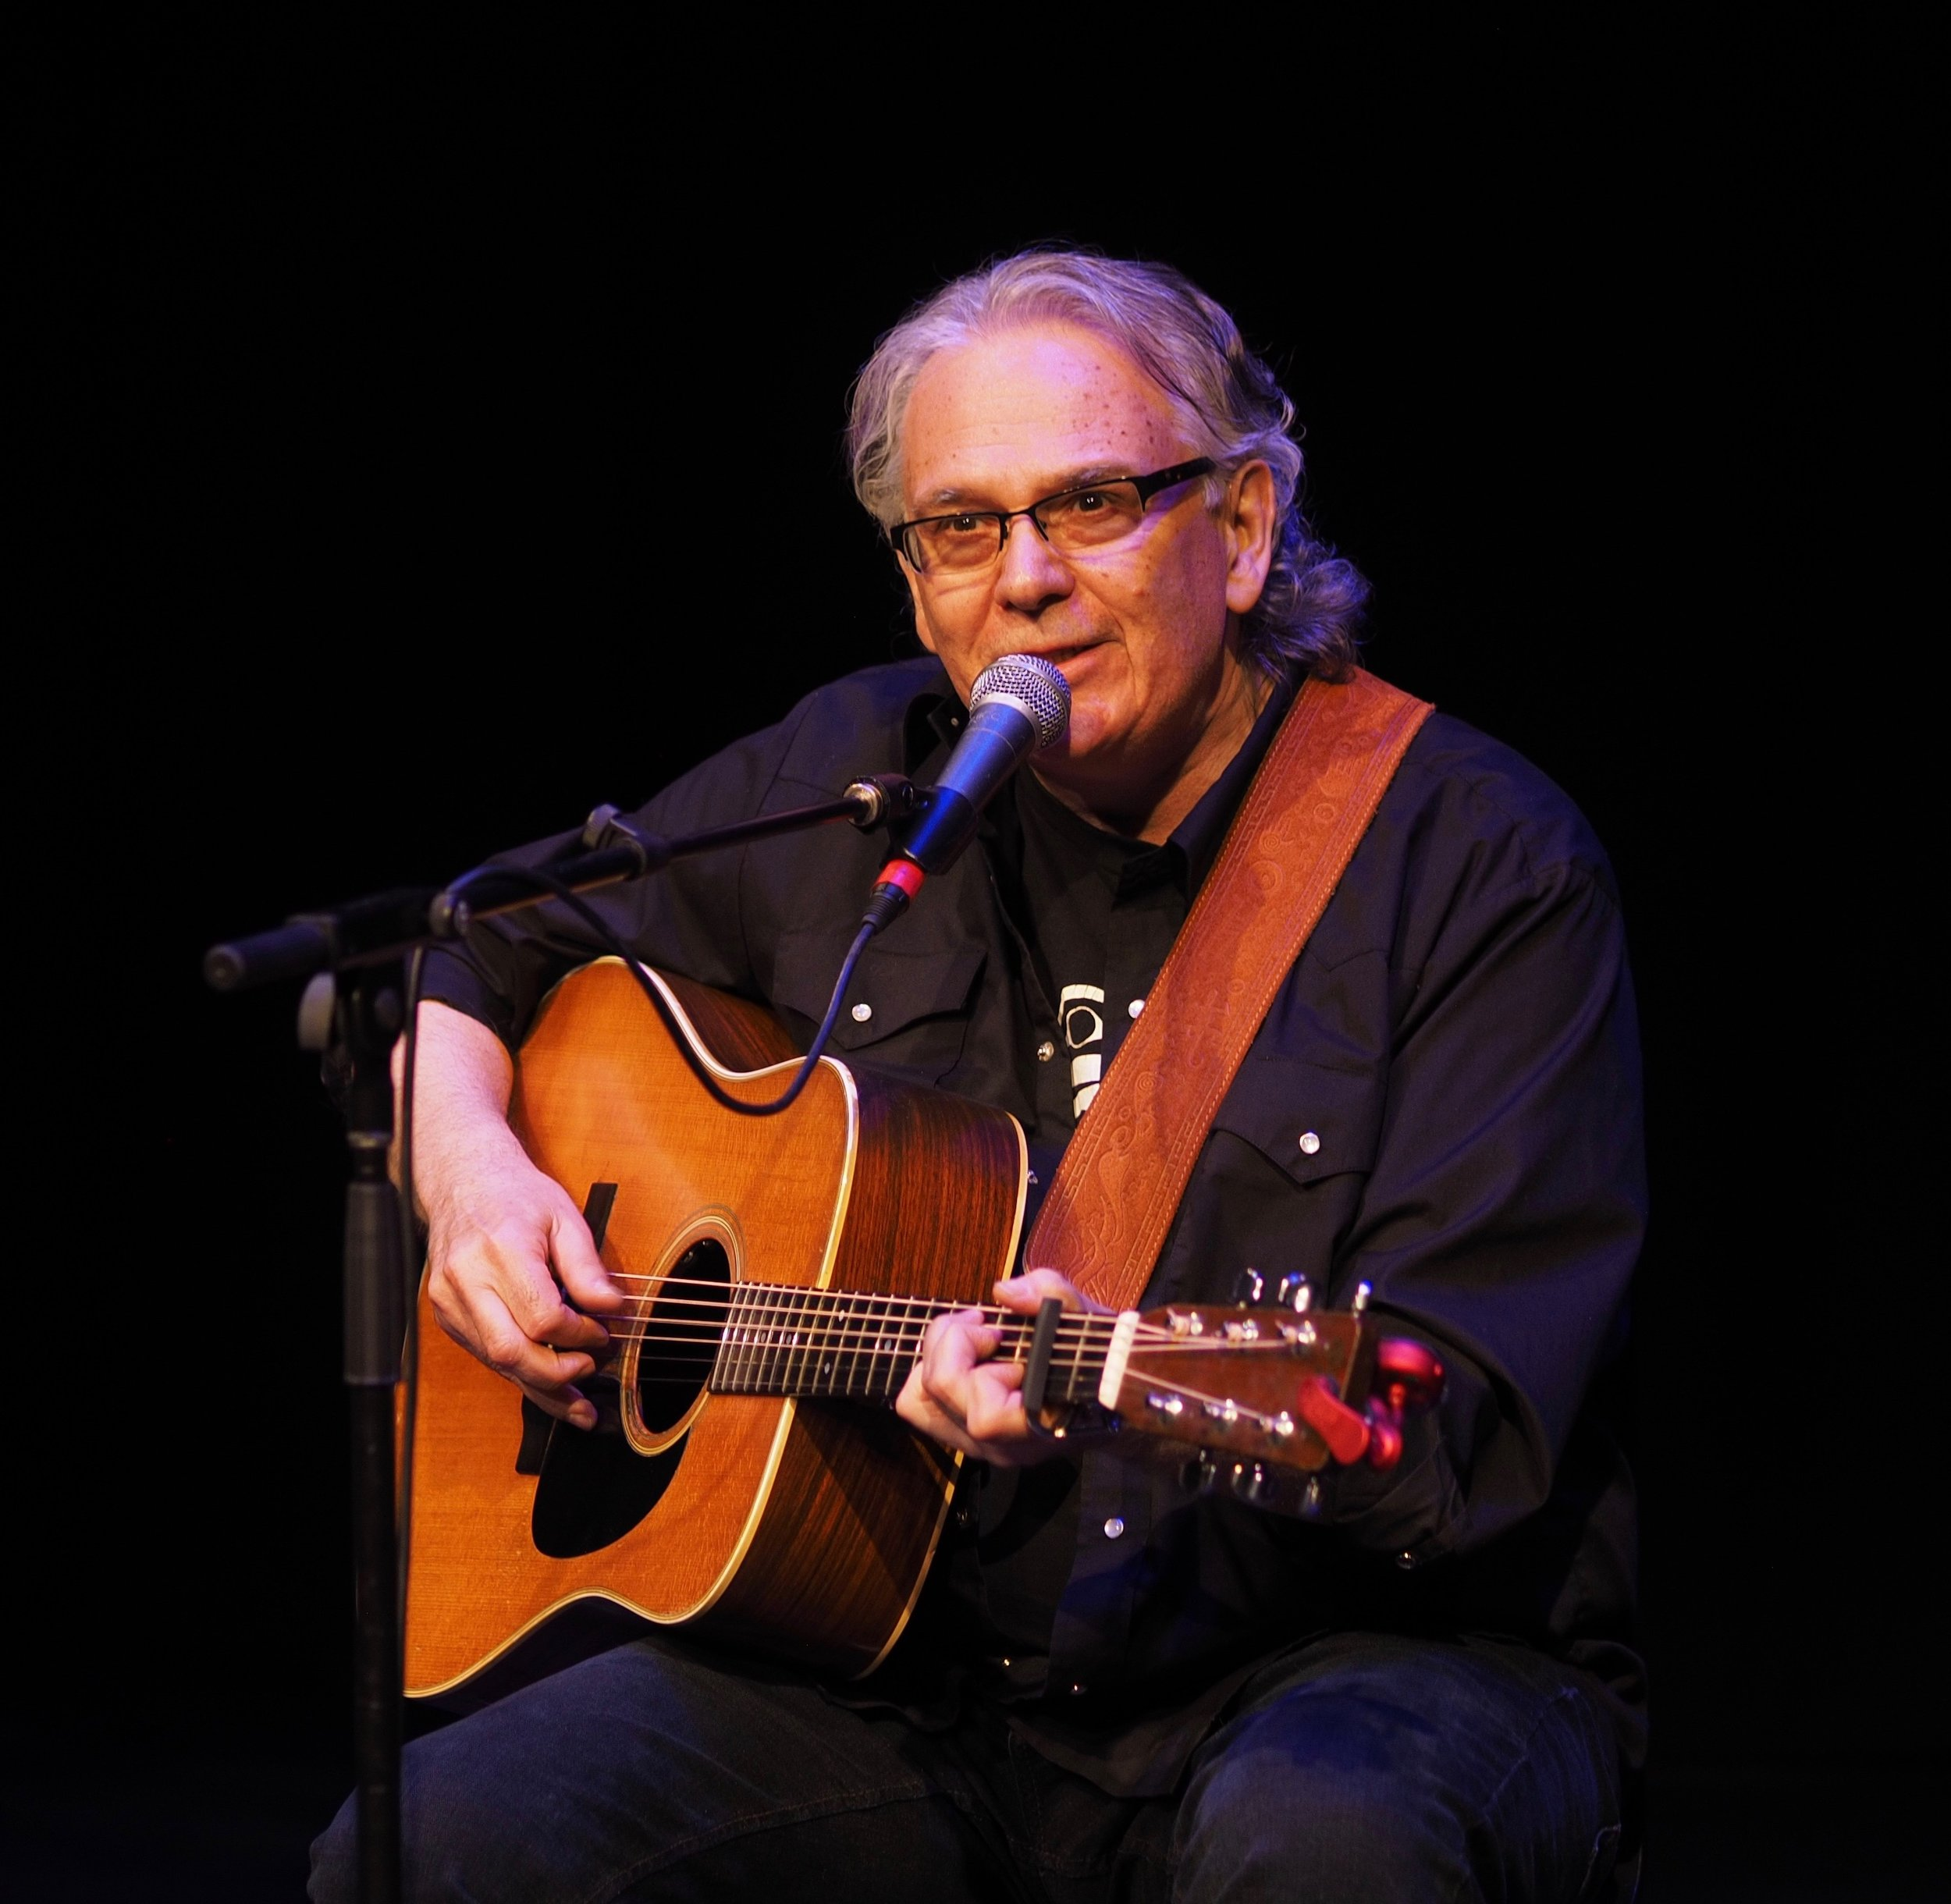 Ivan Boudreau  is a veteran songwriter, musician and our SongStage host.